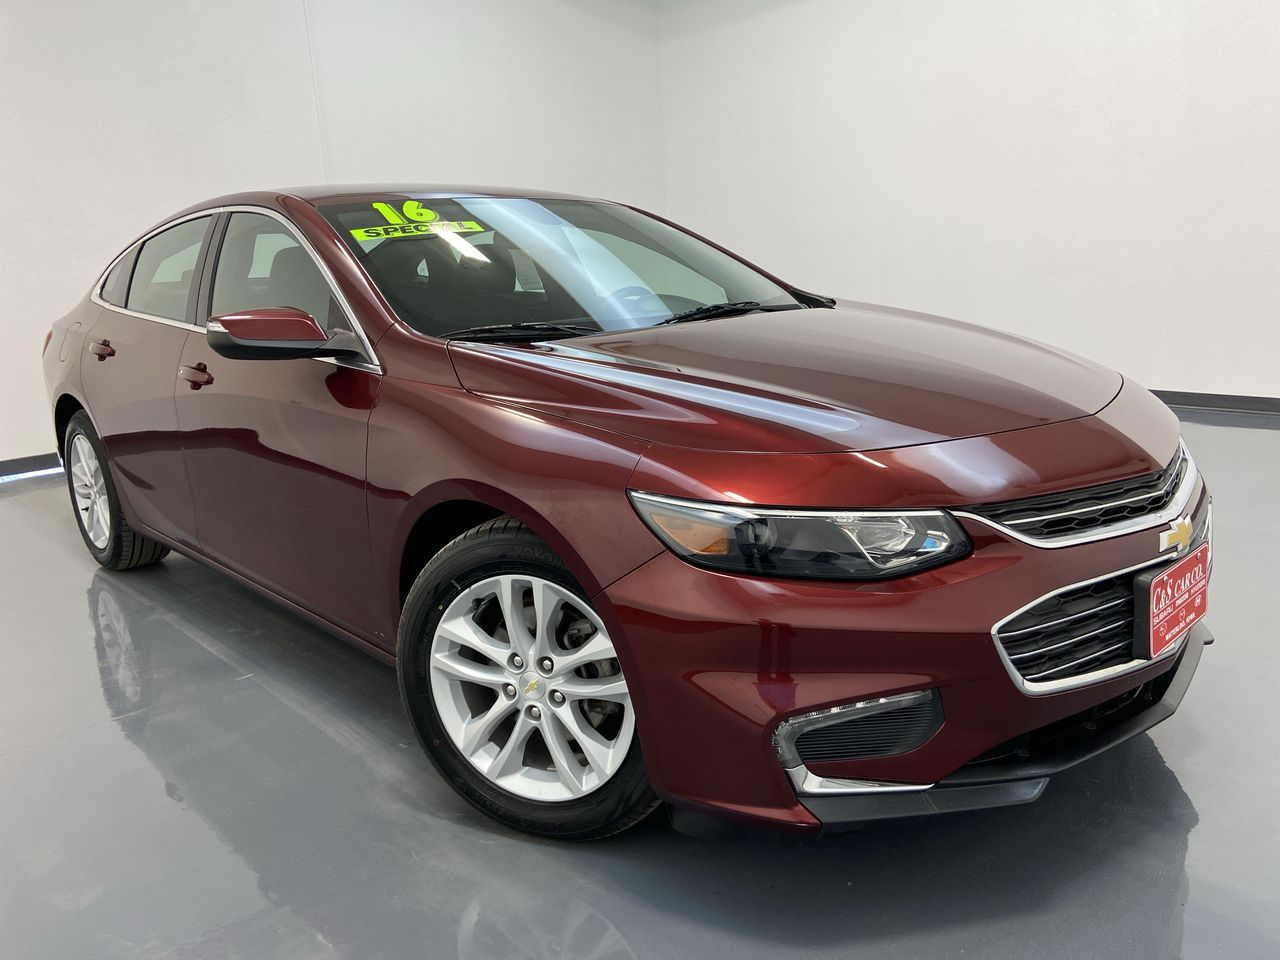 2016 Chevrolet Malibu 4D Sedan  - HY8582A  - C & S Car Company